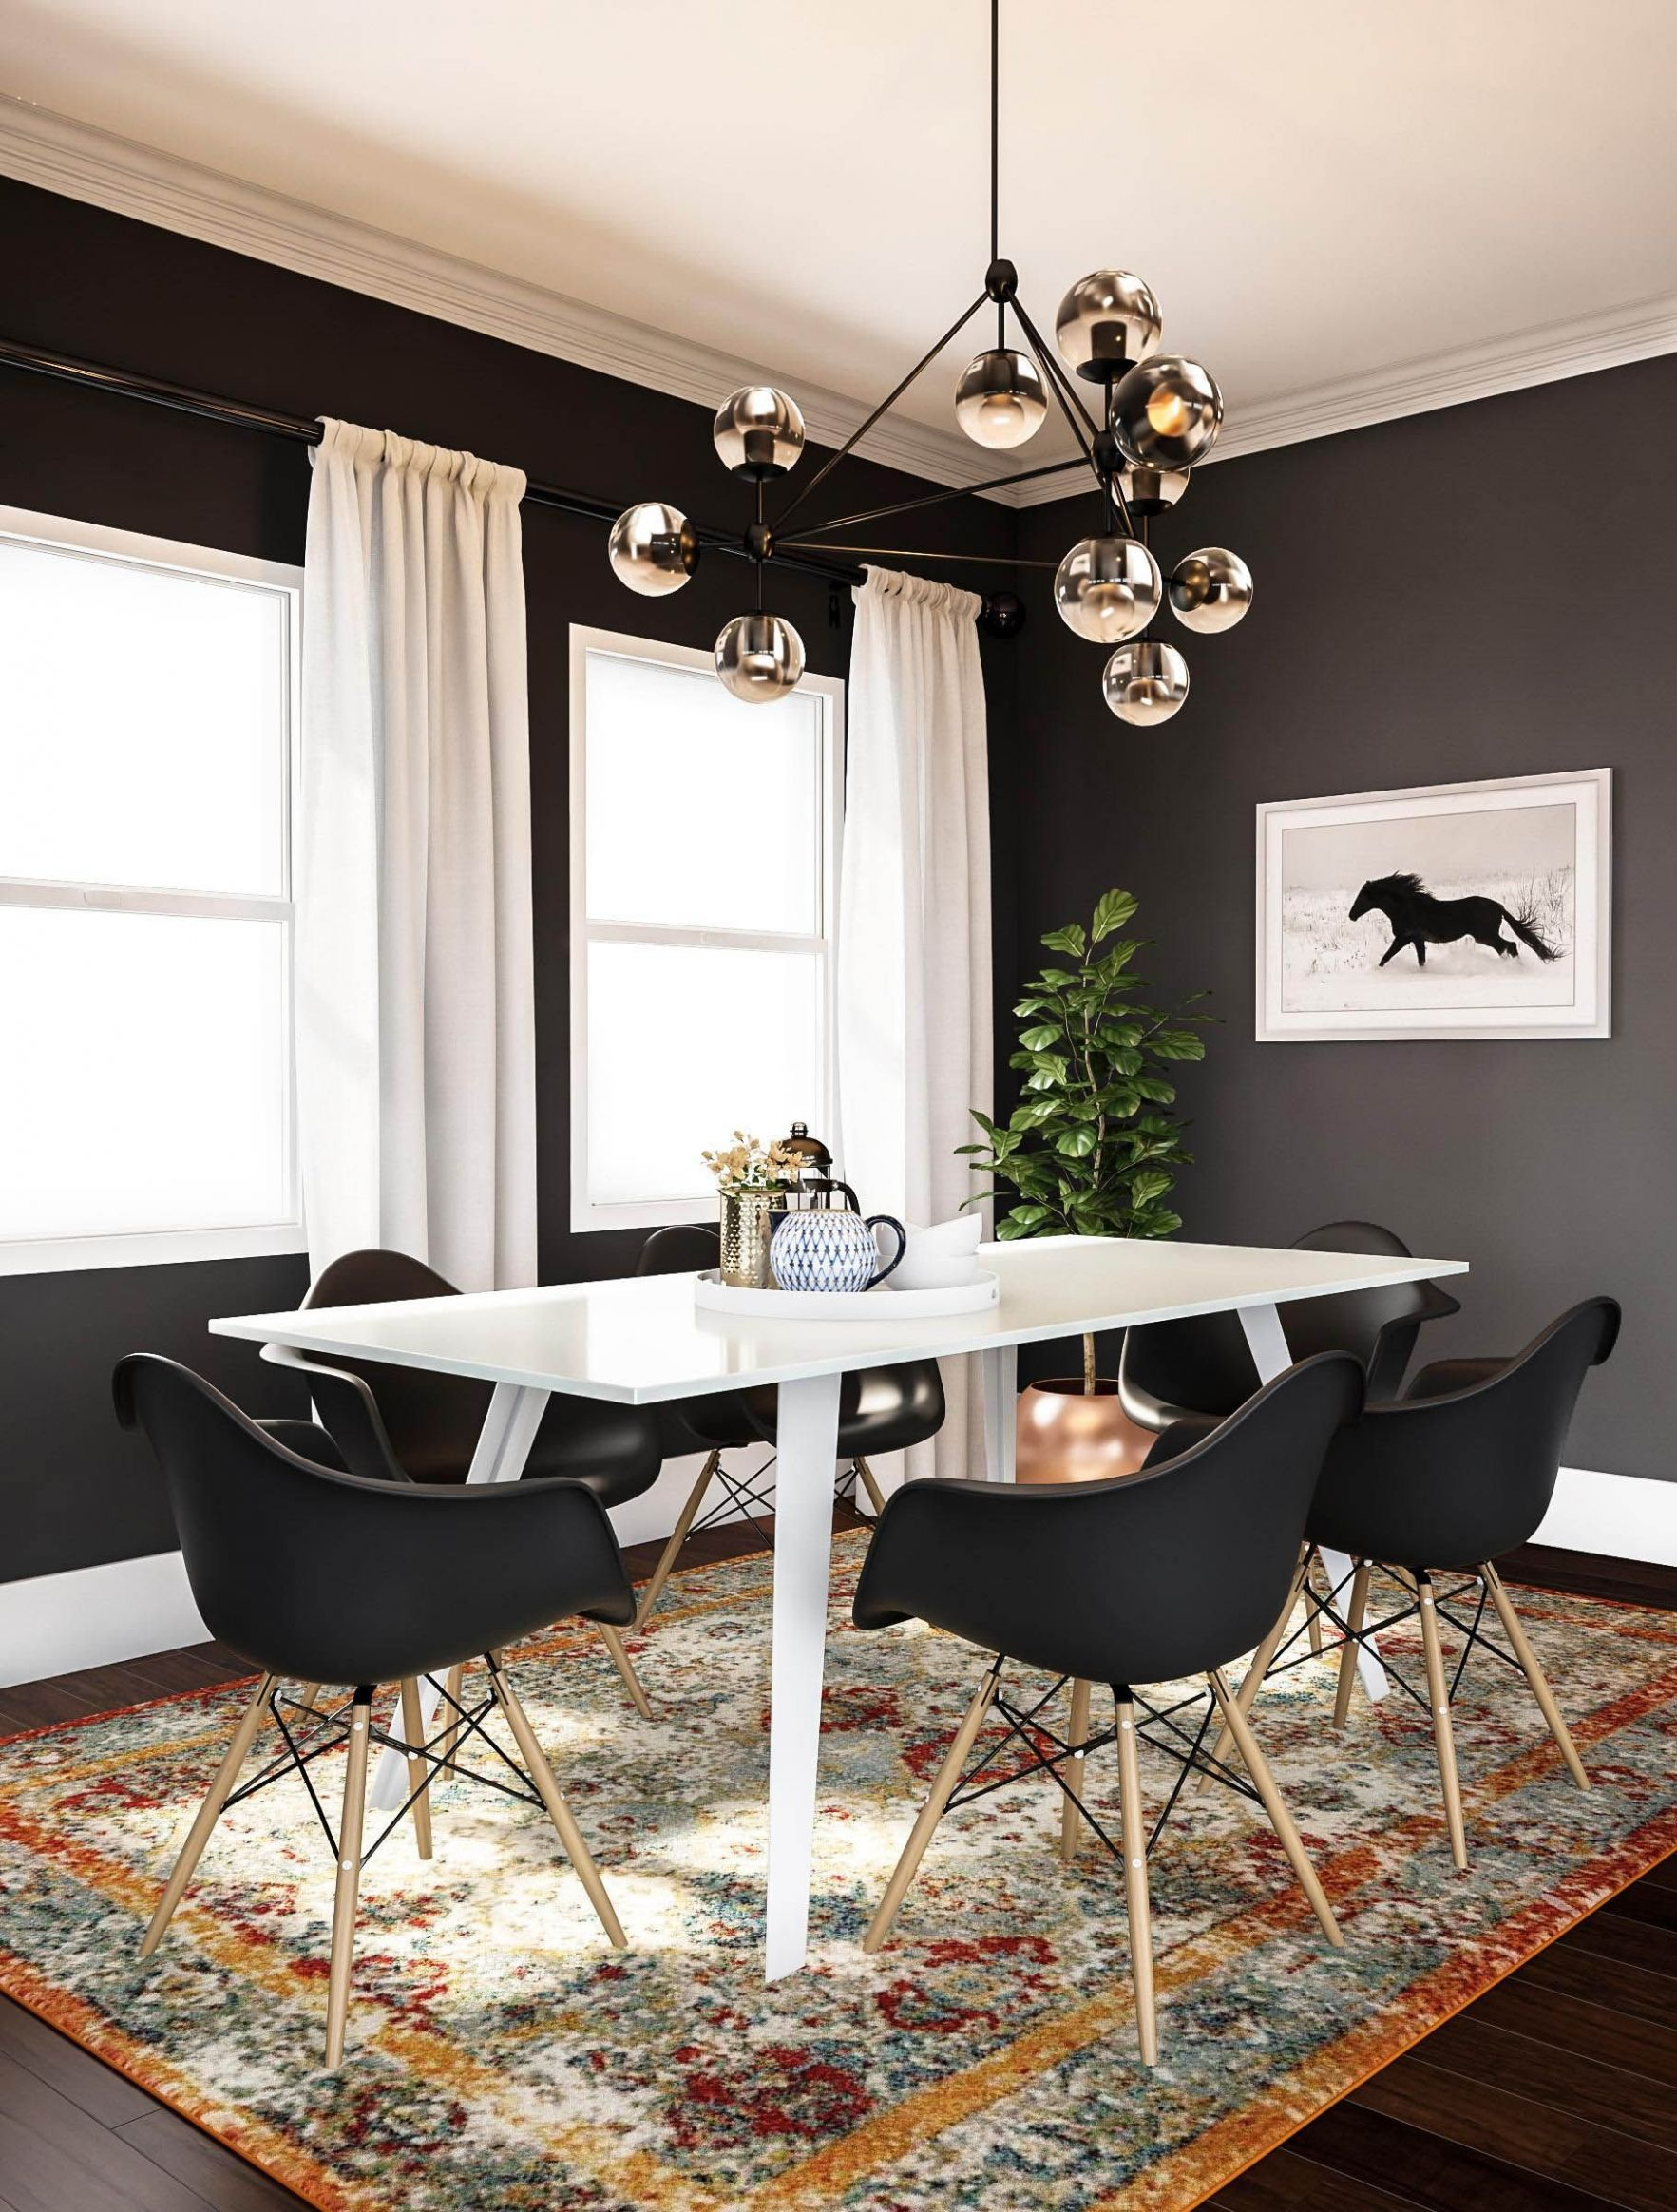 Dining-room Rugs Can Be Practical If You Follow These Rules ..